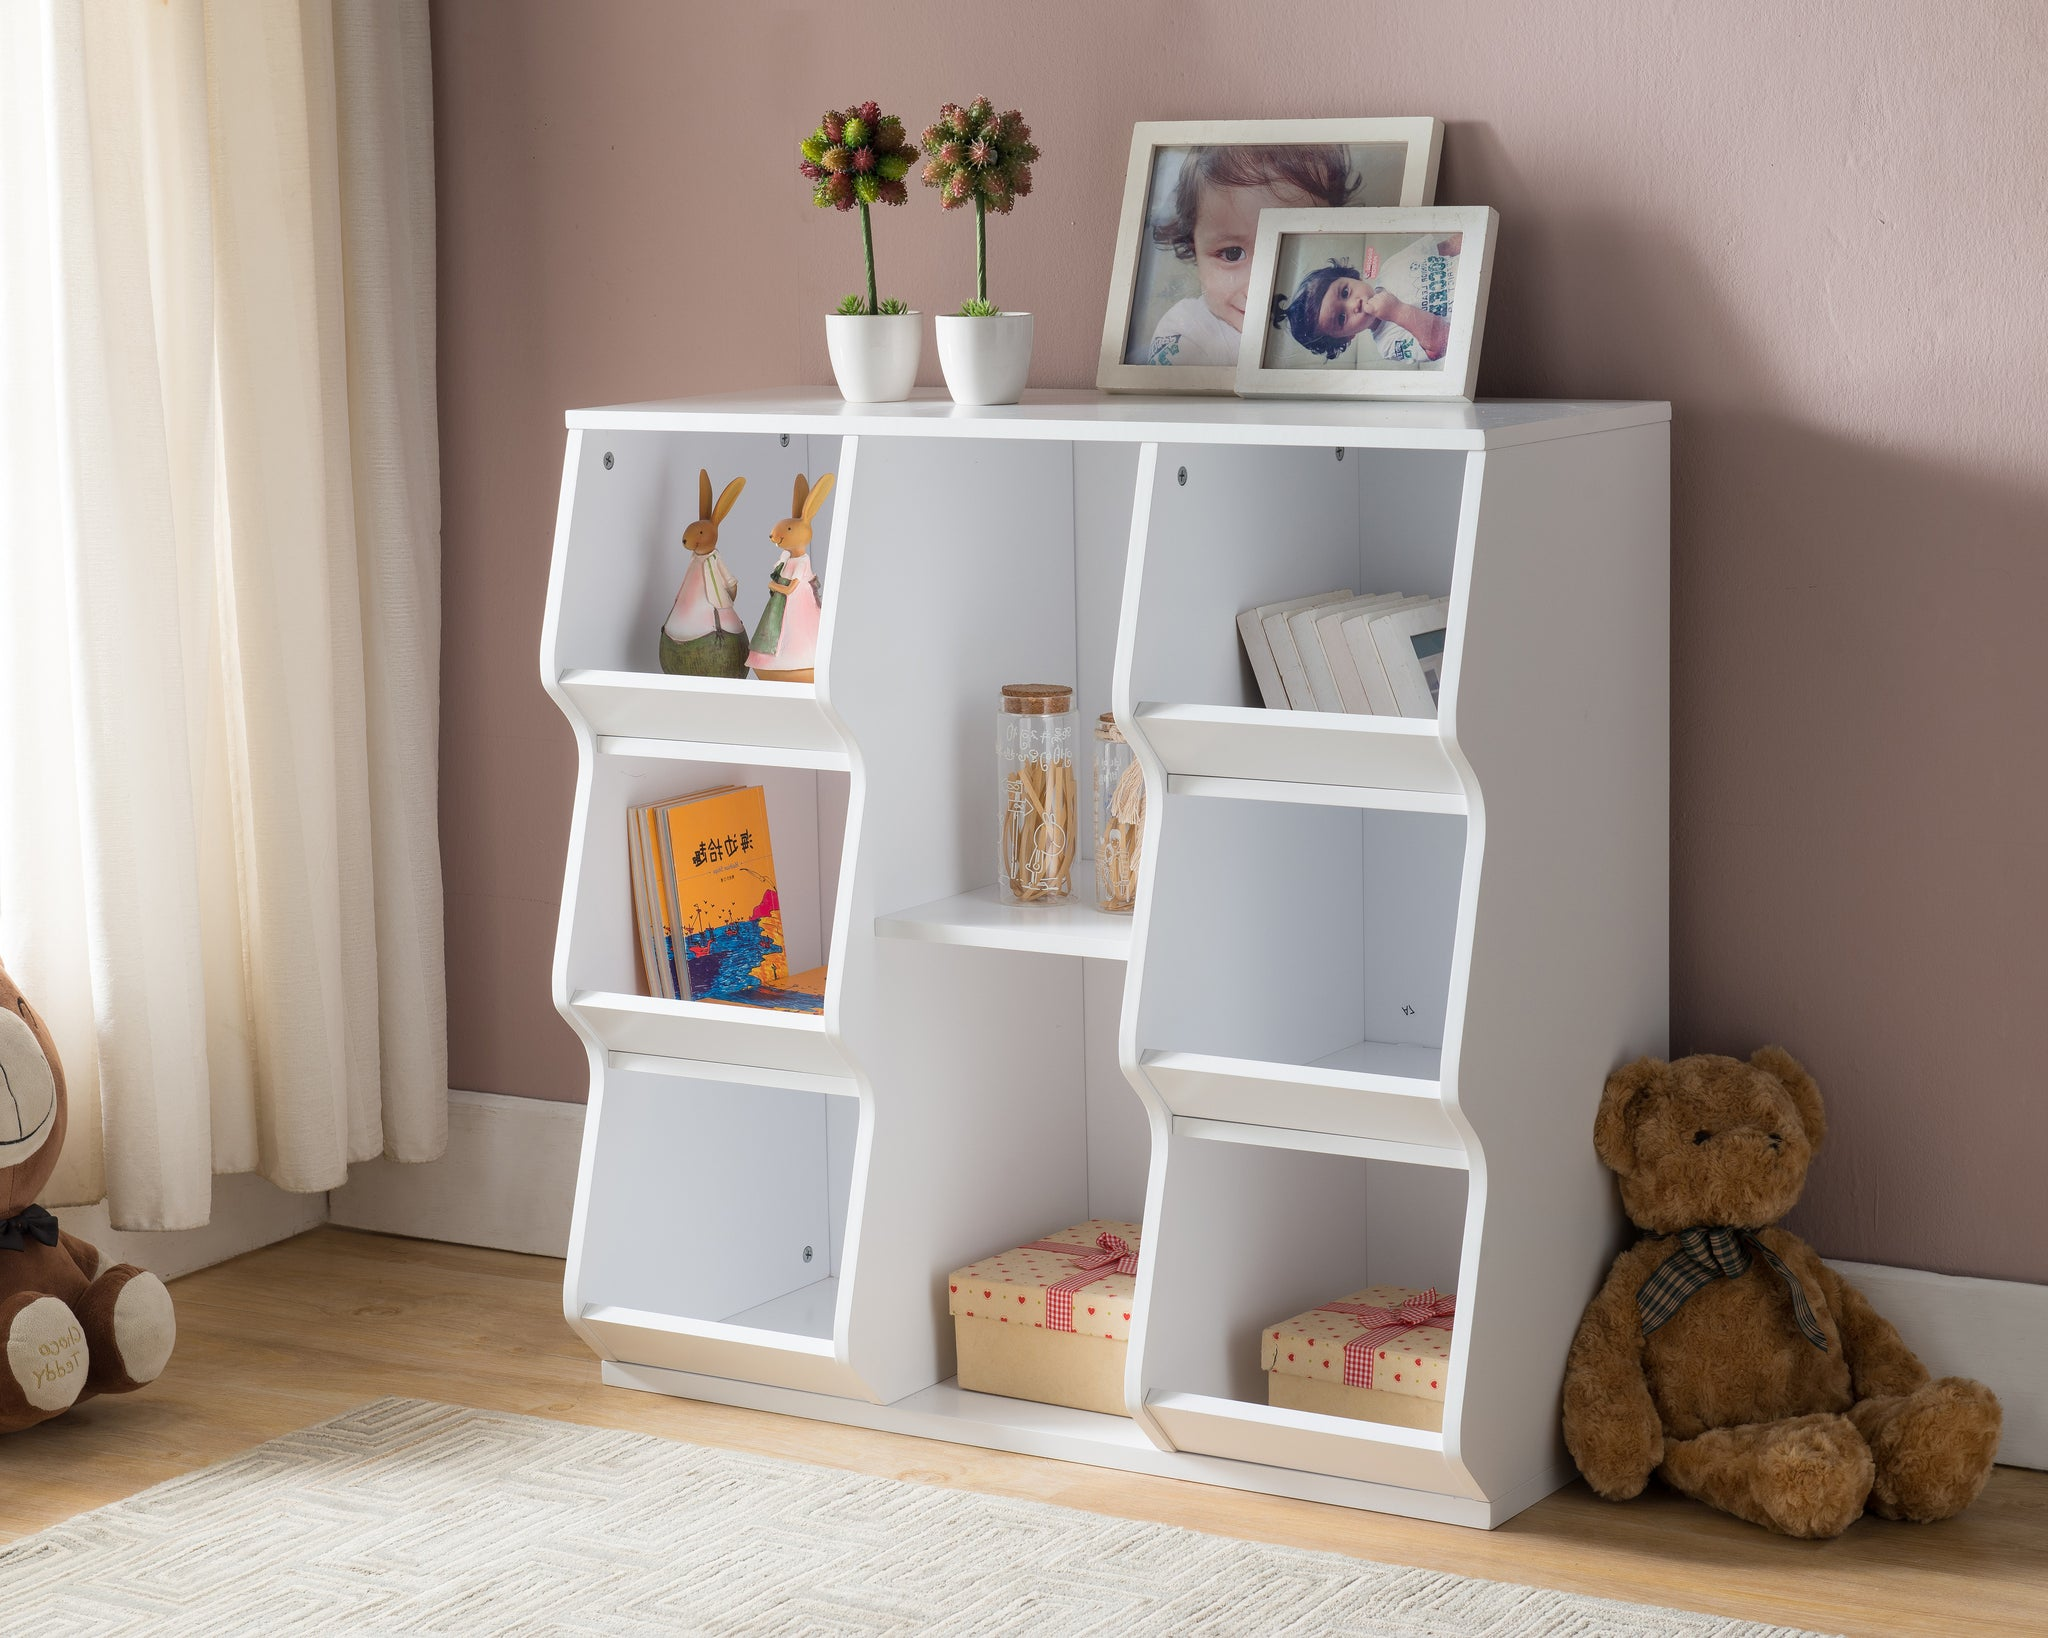 furniture cute kids of wonderful new ideas bookshelf storage and white decor image